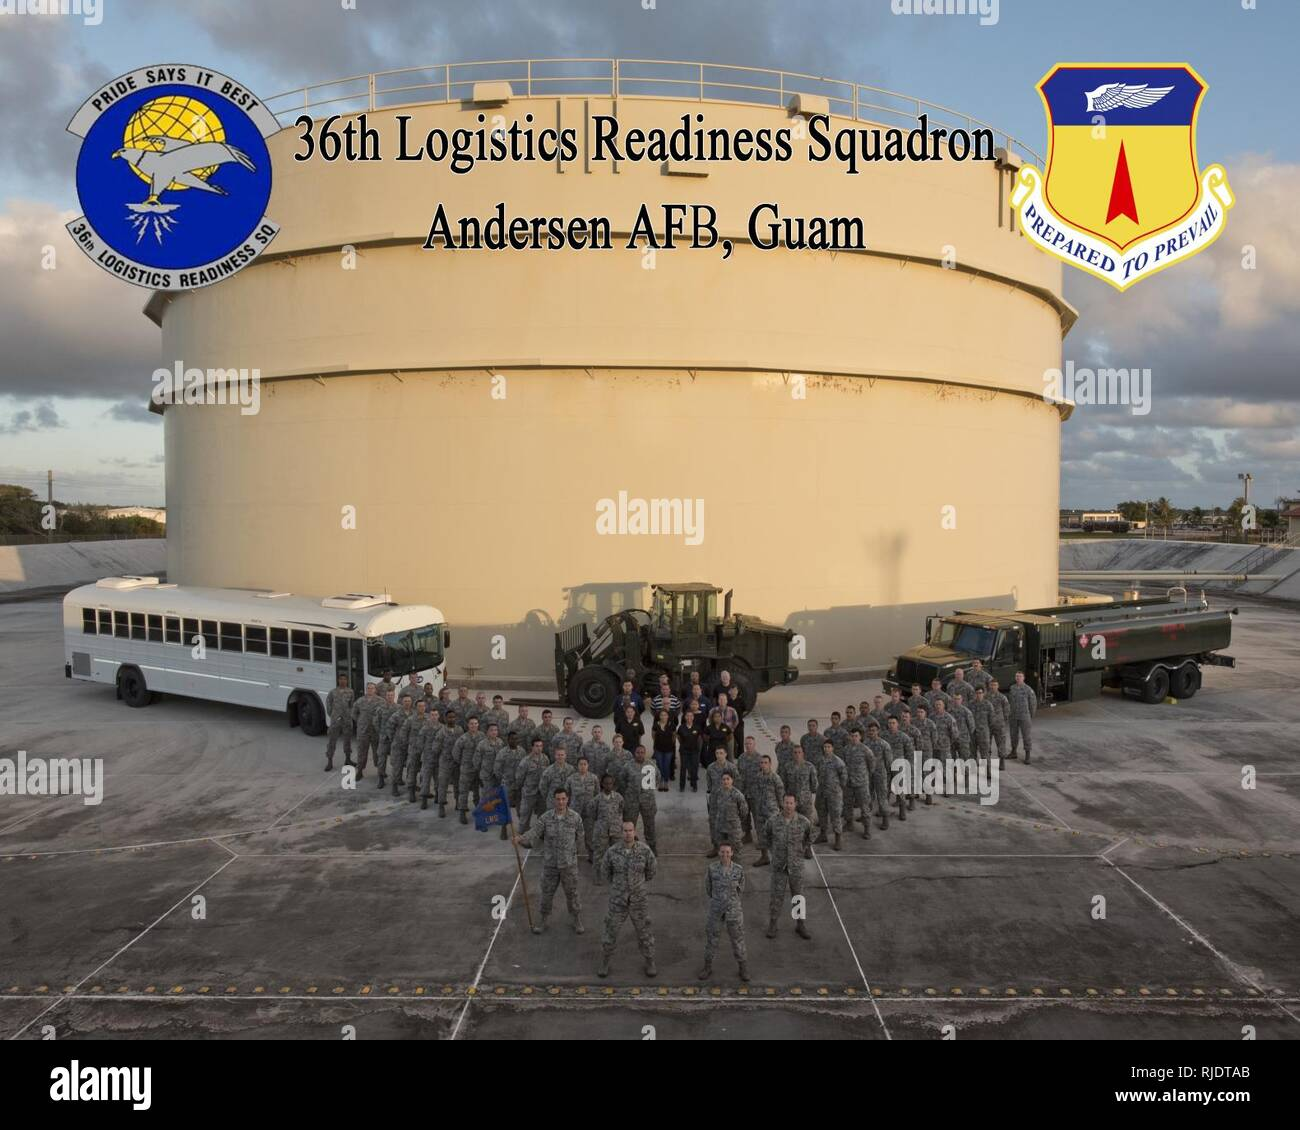 the 36th Logistics Readiness Squadron poses for a Squadron photo Jan. 11, 2018, at Andersen Air Force Base, Guam. The 36th Logistics Readiness Squadron provides Team Andersen with the full spectrum of logistics support to include operating the largest fuel storage location in the Air Force and overseeing the installation deployment and reception operations. - Stock Image